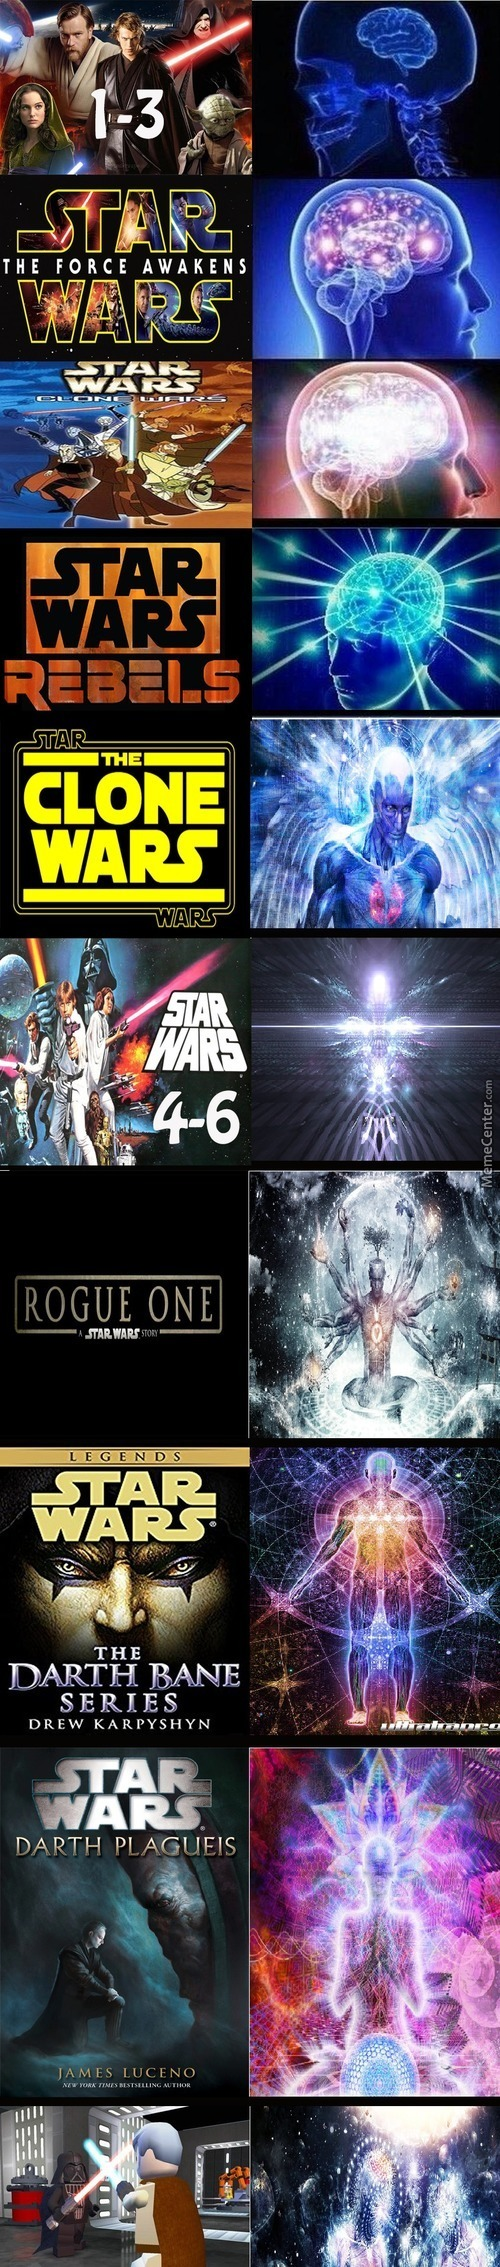 Search Your Feelings, You Know It To Be True